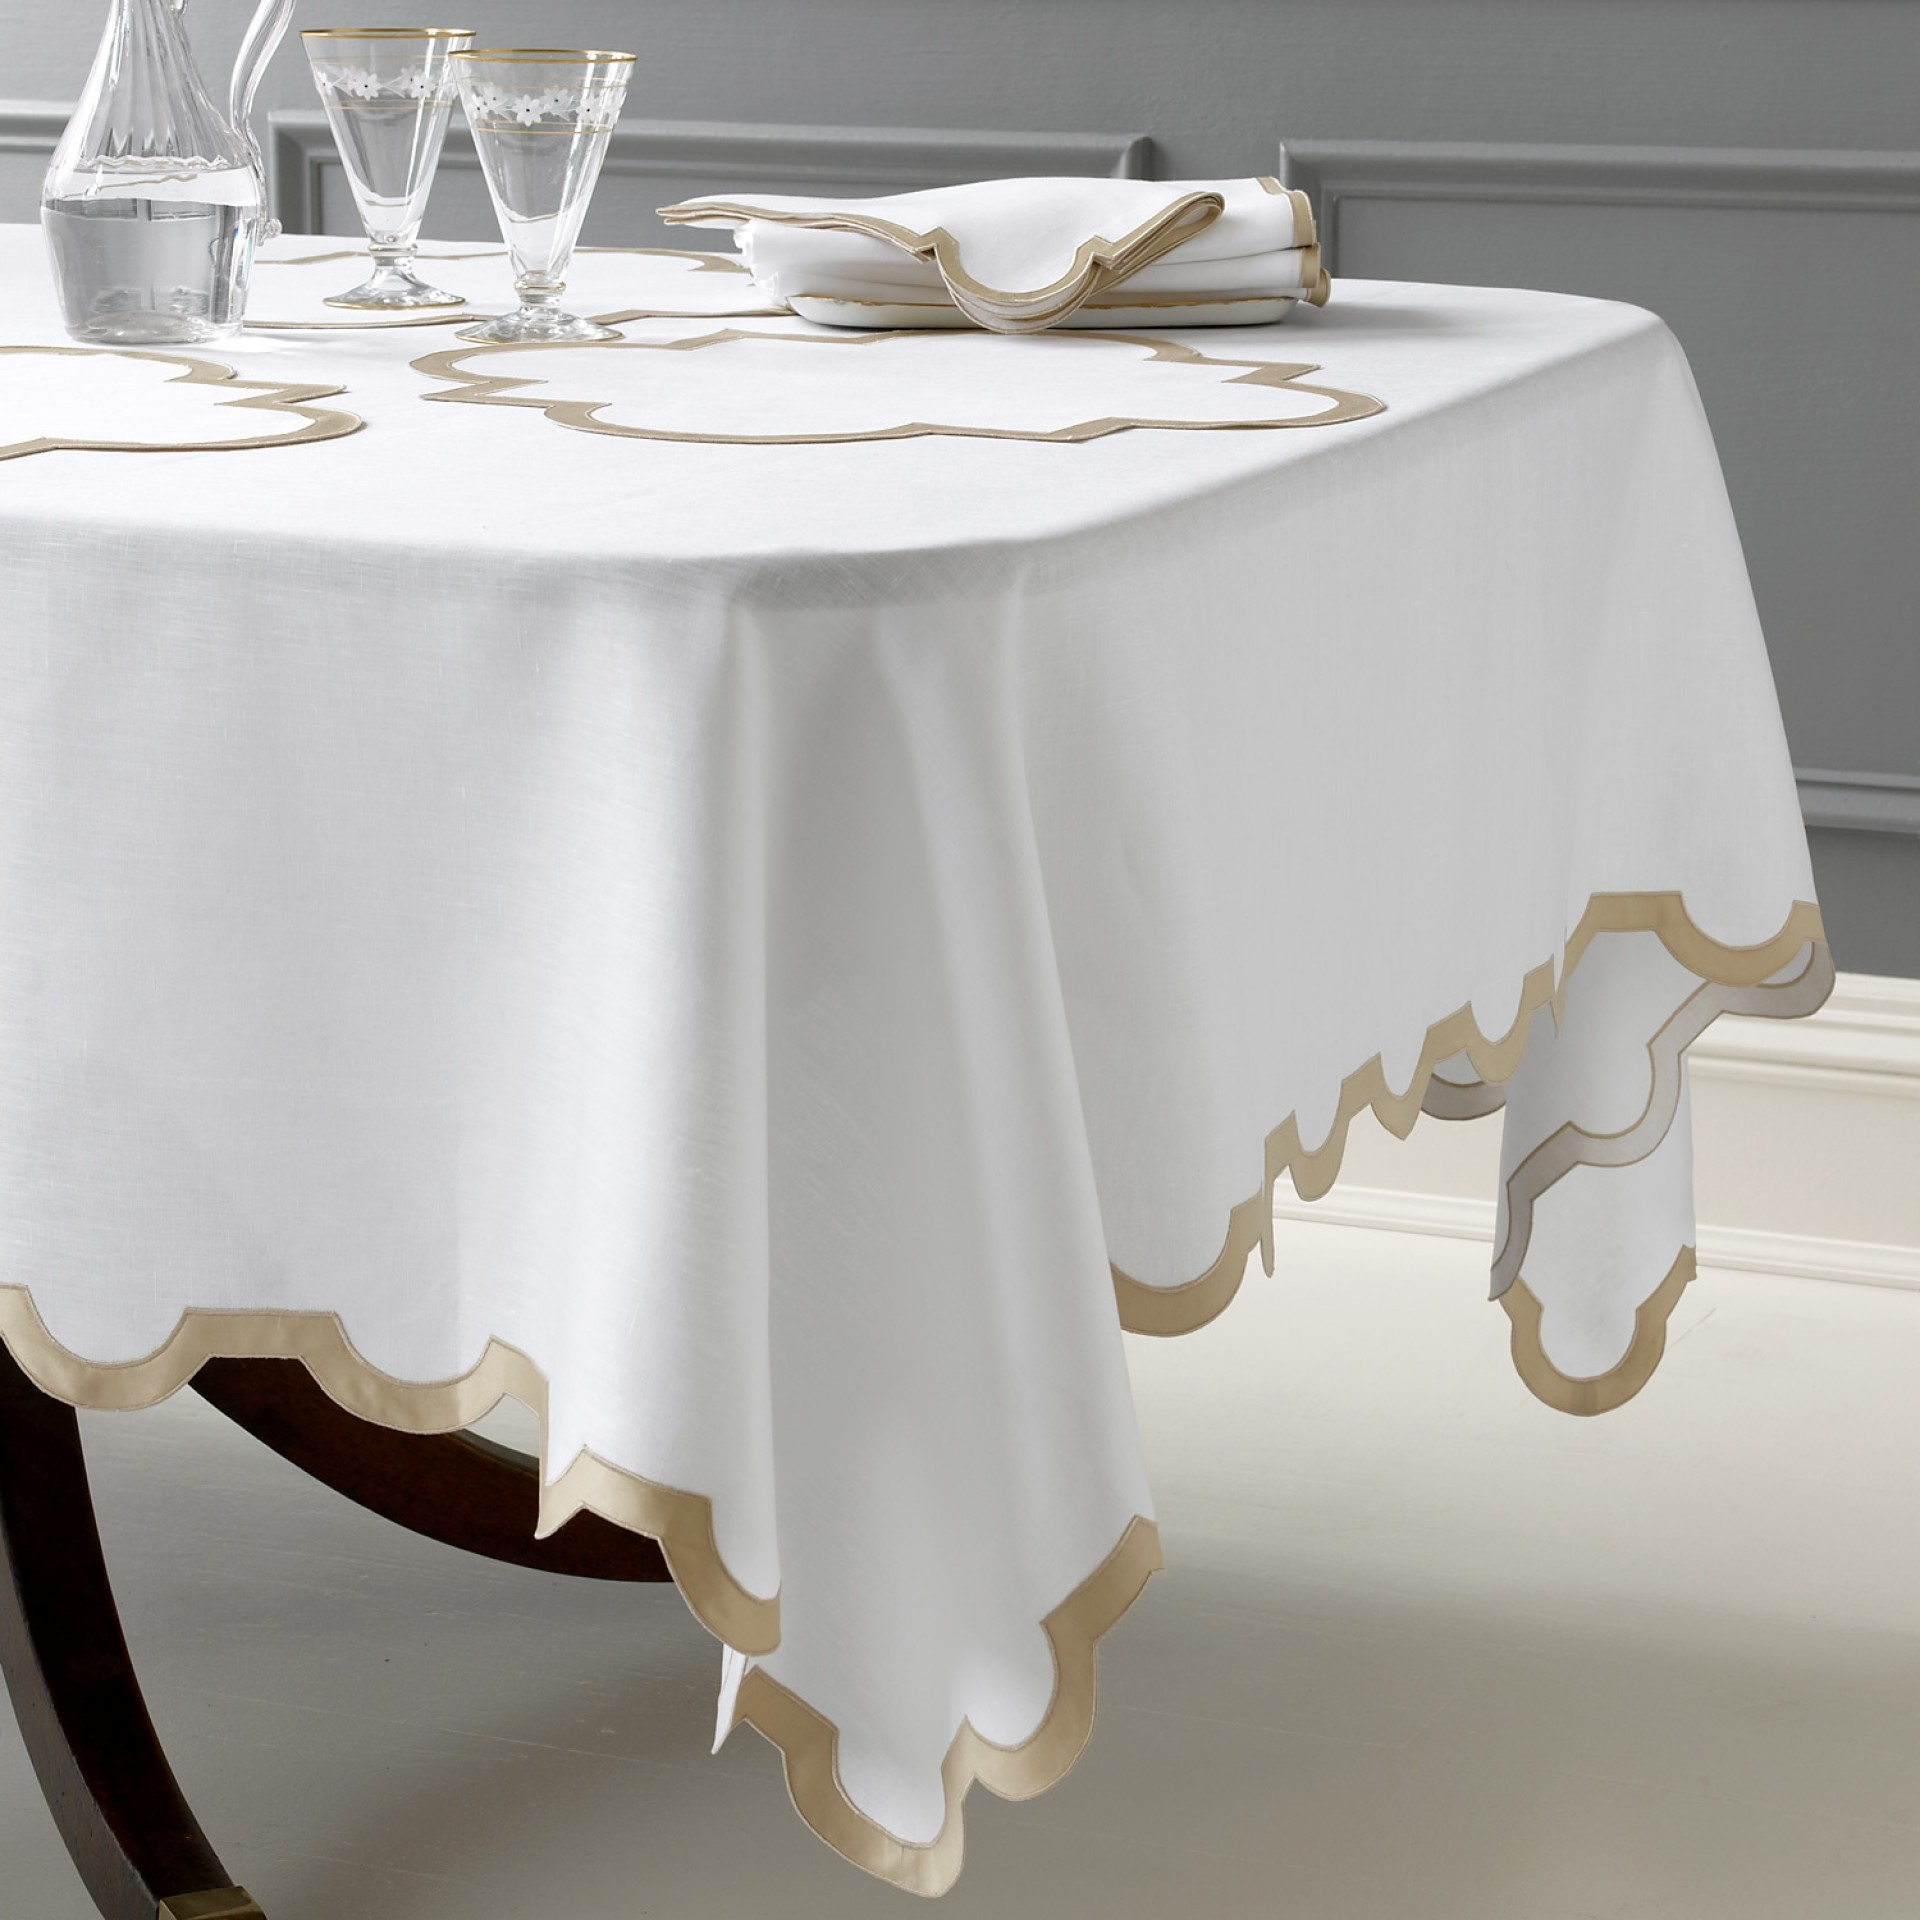 table linens ... matouk - mirasol napkins, placemats, tablecloths ULHNDAP